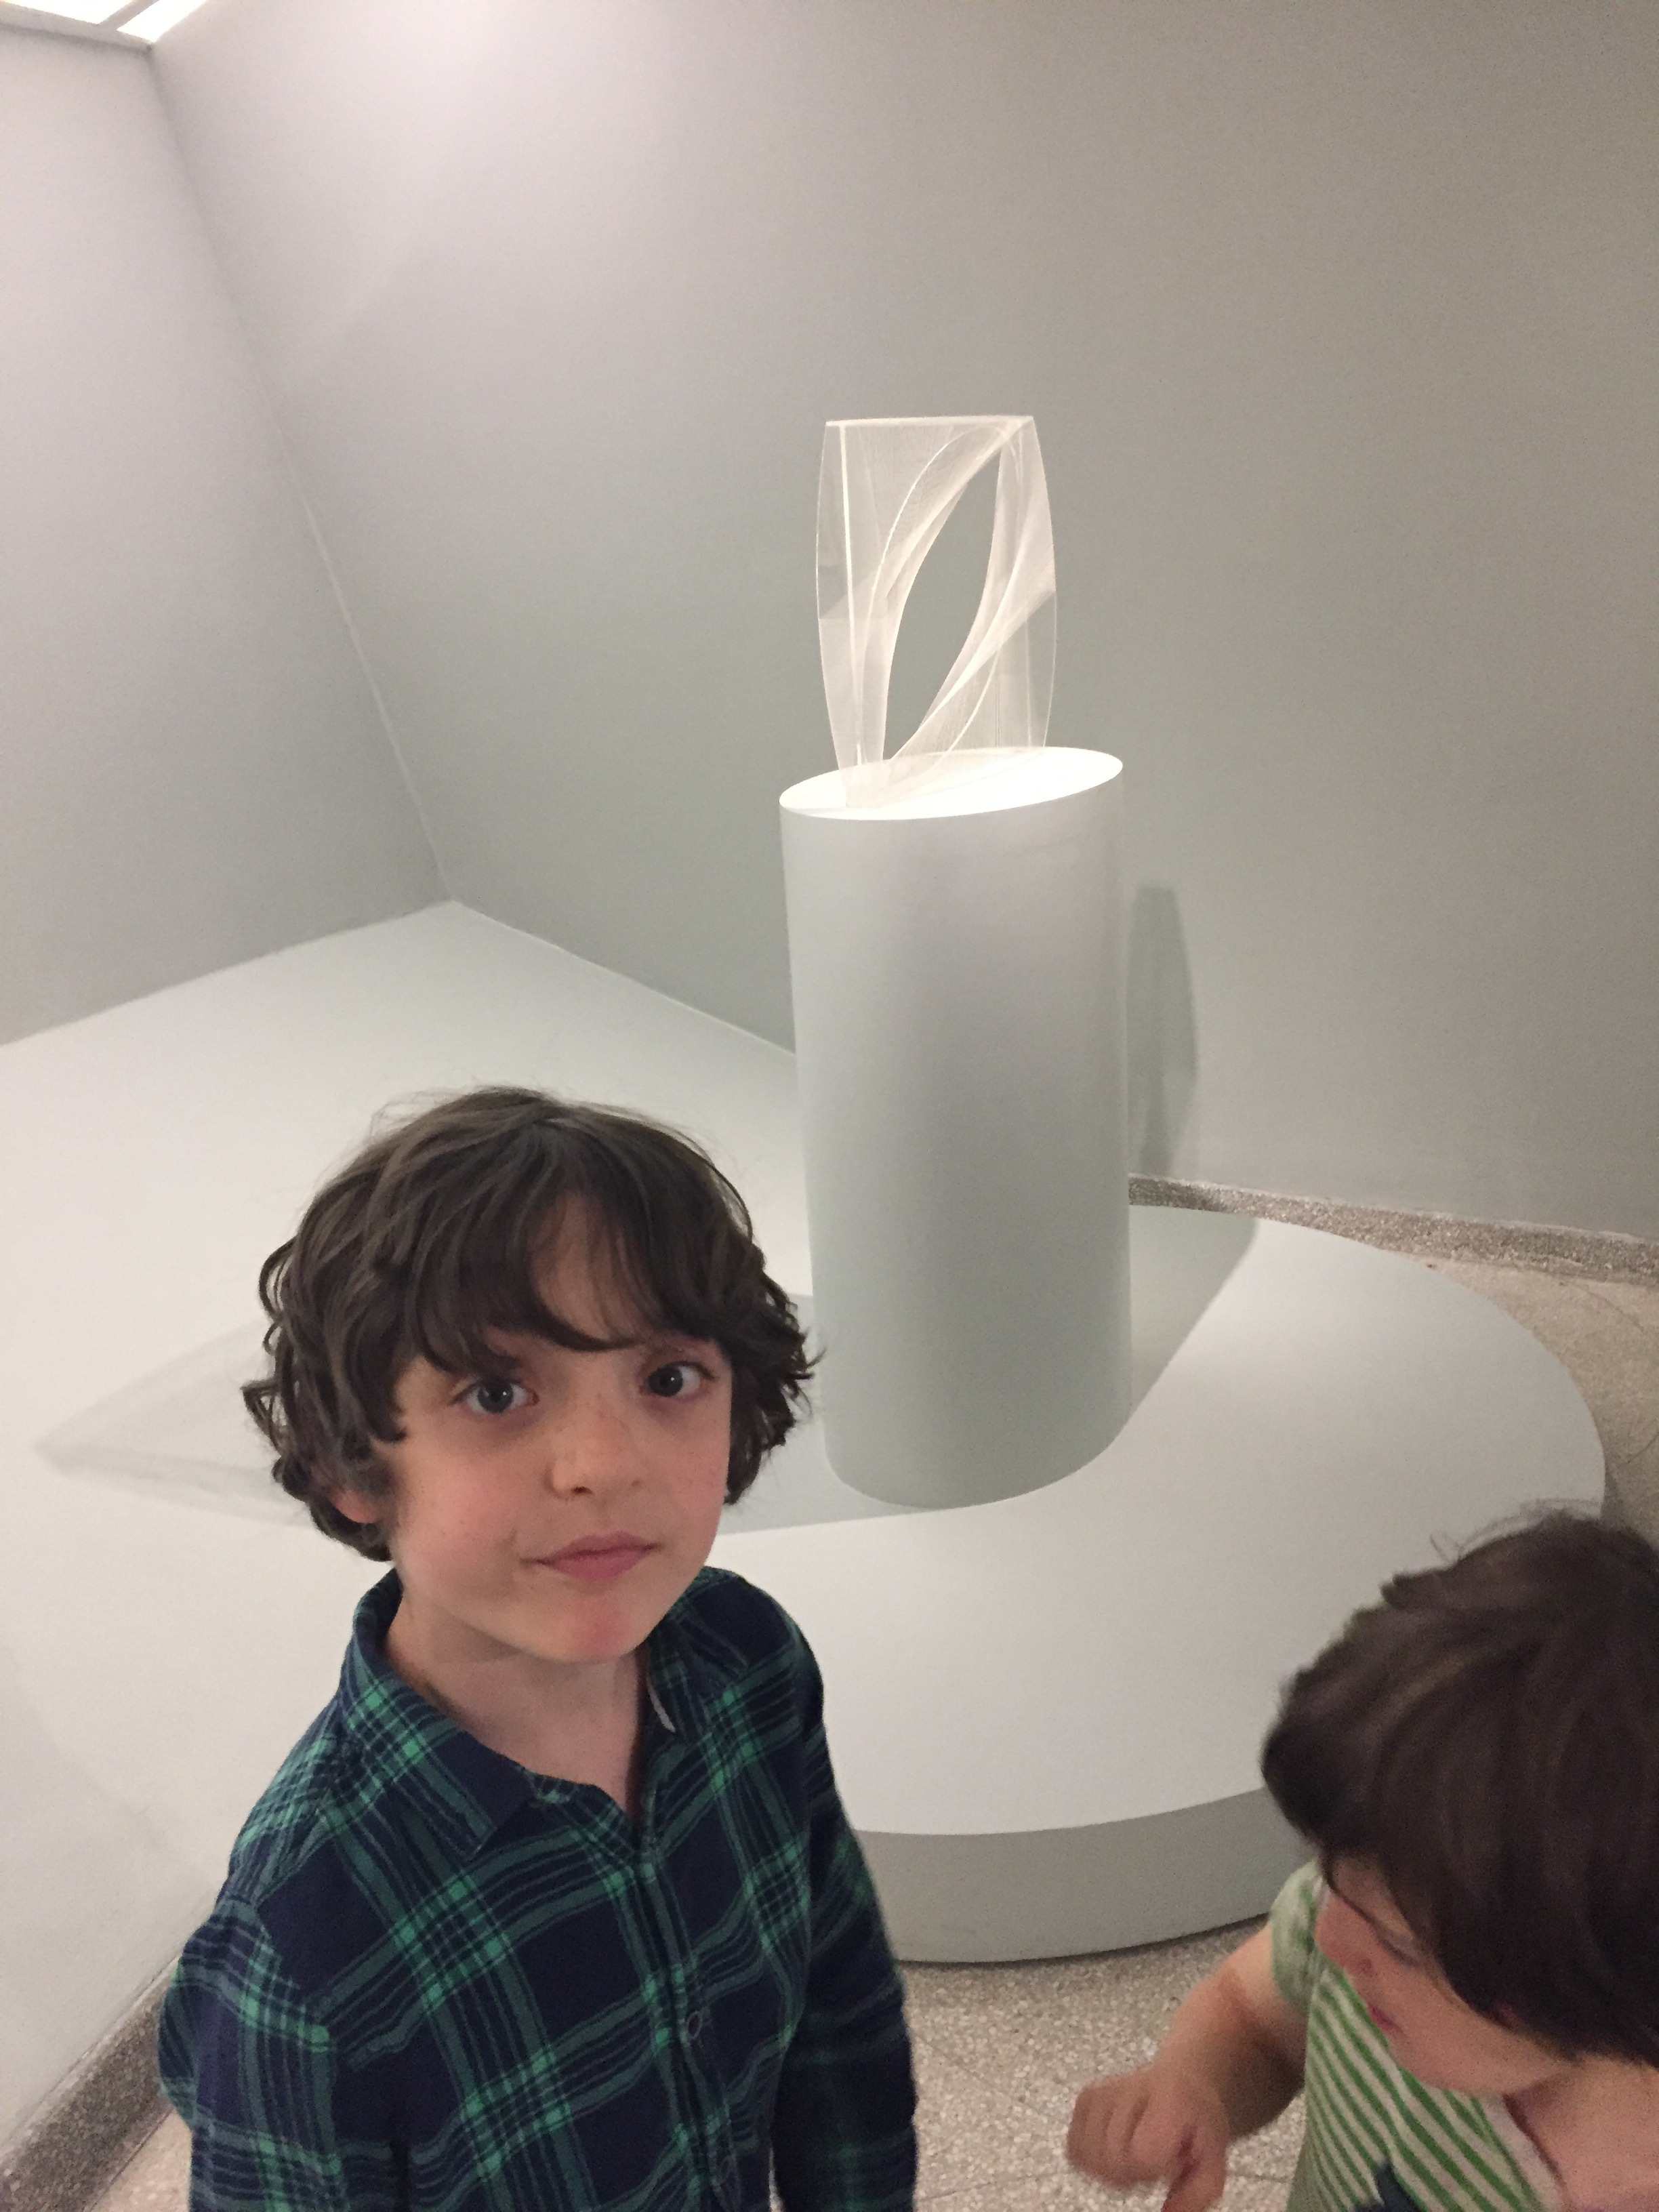 """Gabo constructivism I found to be pretty cool. Zephyr said it made him happy, and there was an """"oddly satisfying"""" energy around it."""